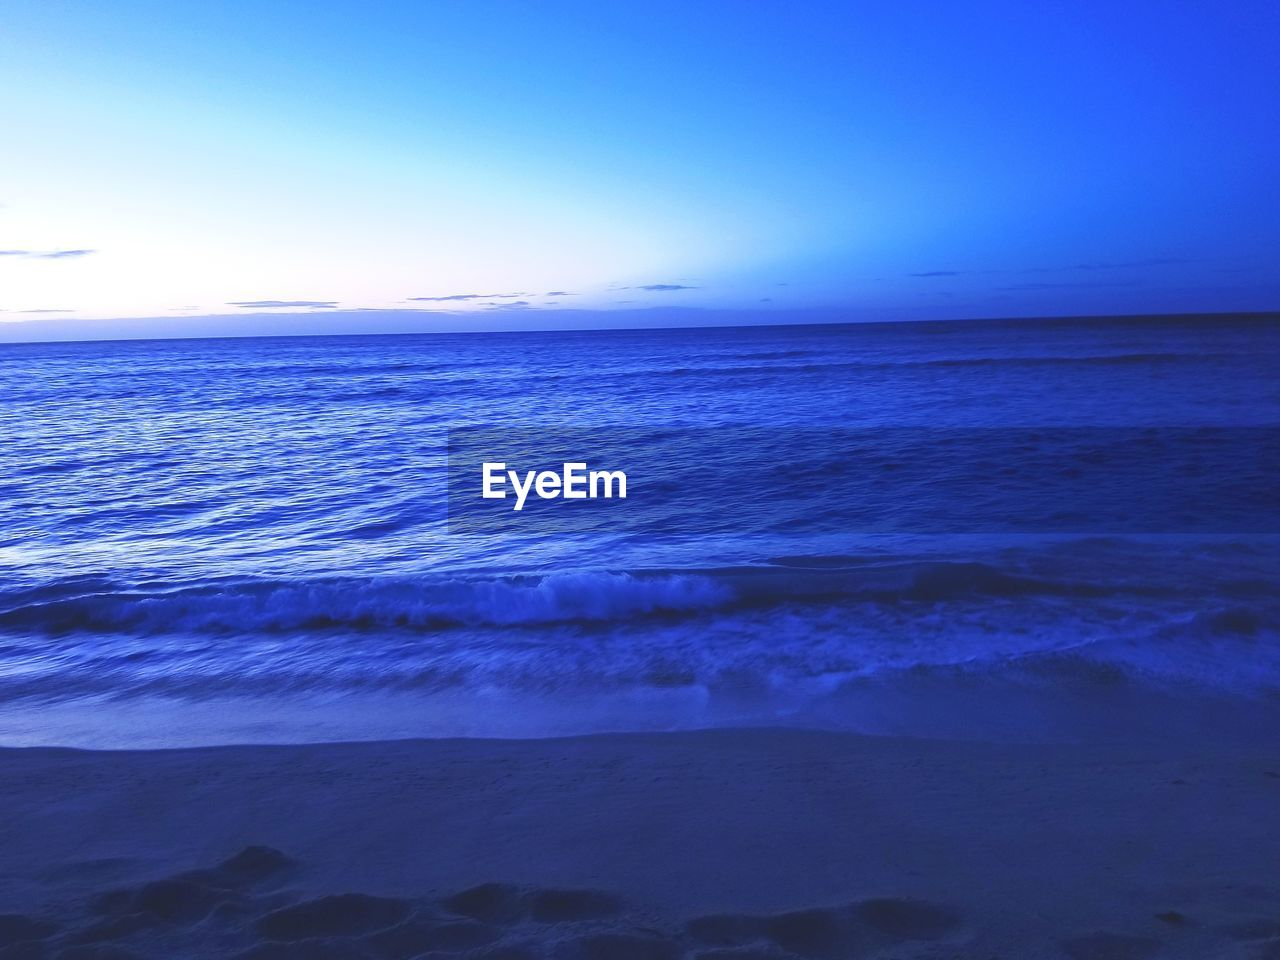 sea, water, sky, beauty in nature, scenics - nature, tranquil scene, tranquility, horizon over water, blue, horizon, beach, nature, idyllic, motion, land, no people, sunset, wave, outdoors